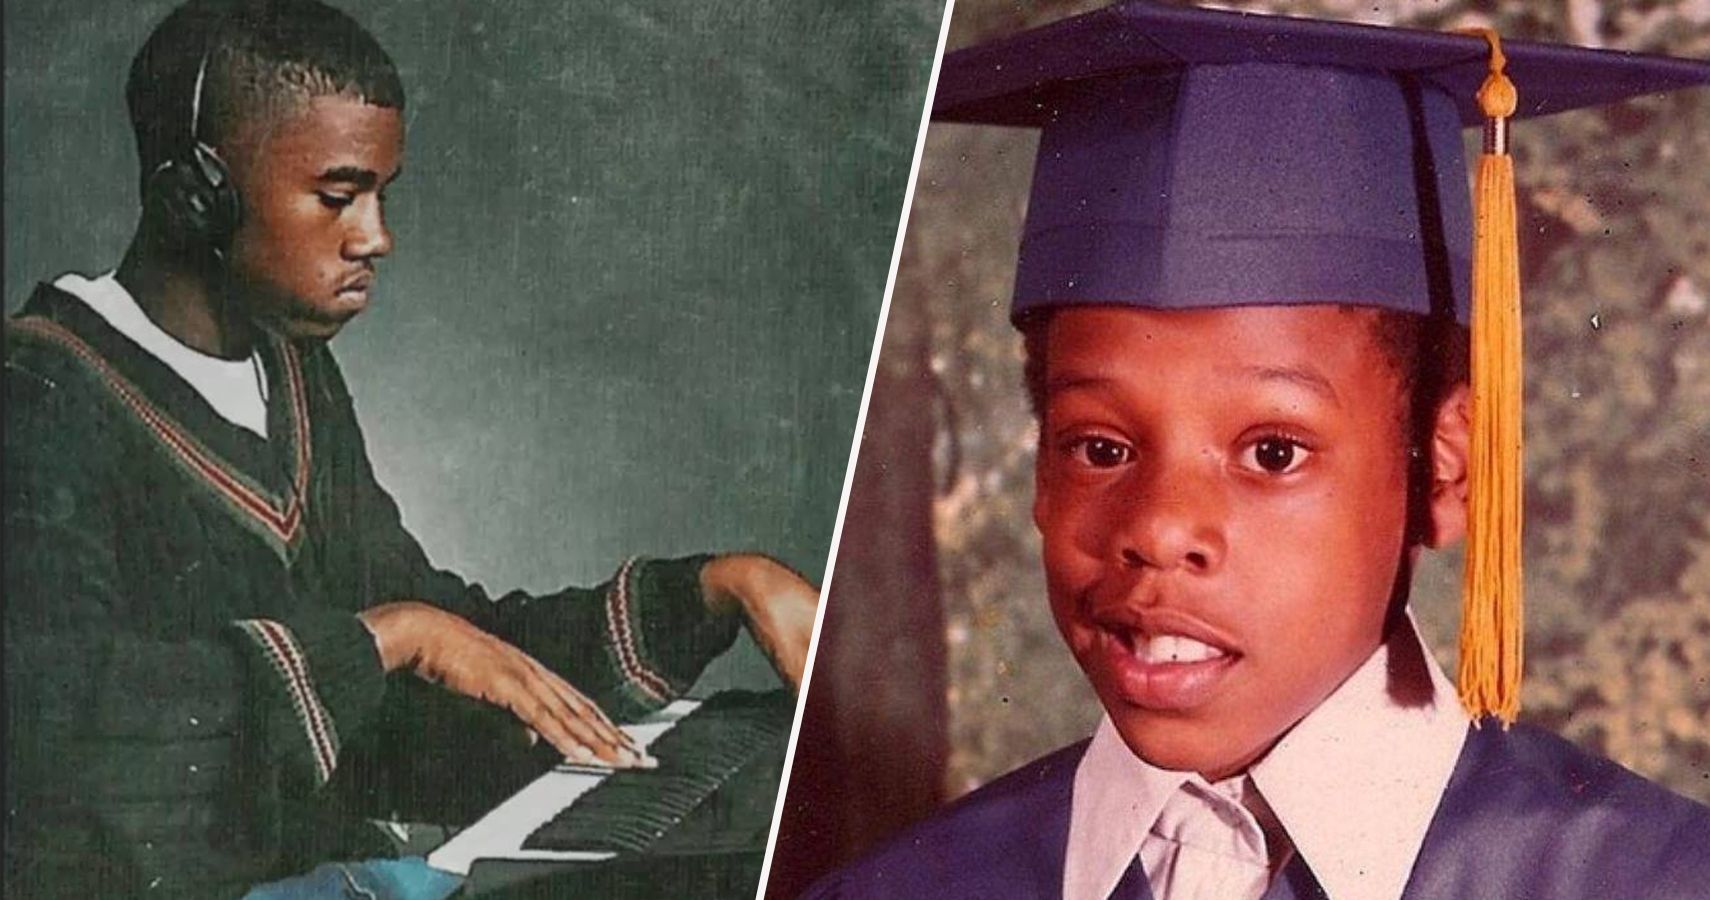 10 Rare Pictures Of Young Jay Z And 10 Of Young Kanye West